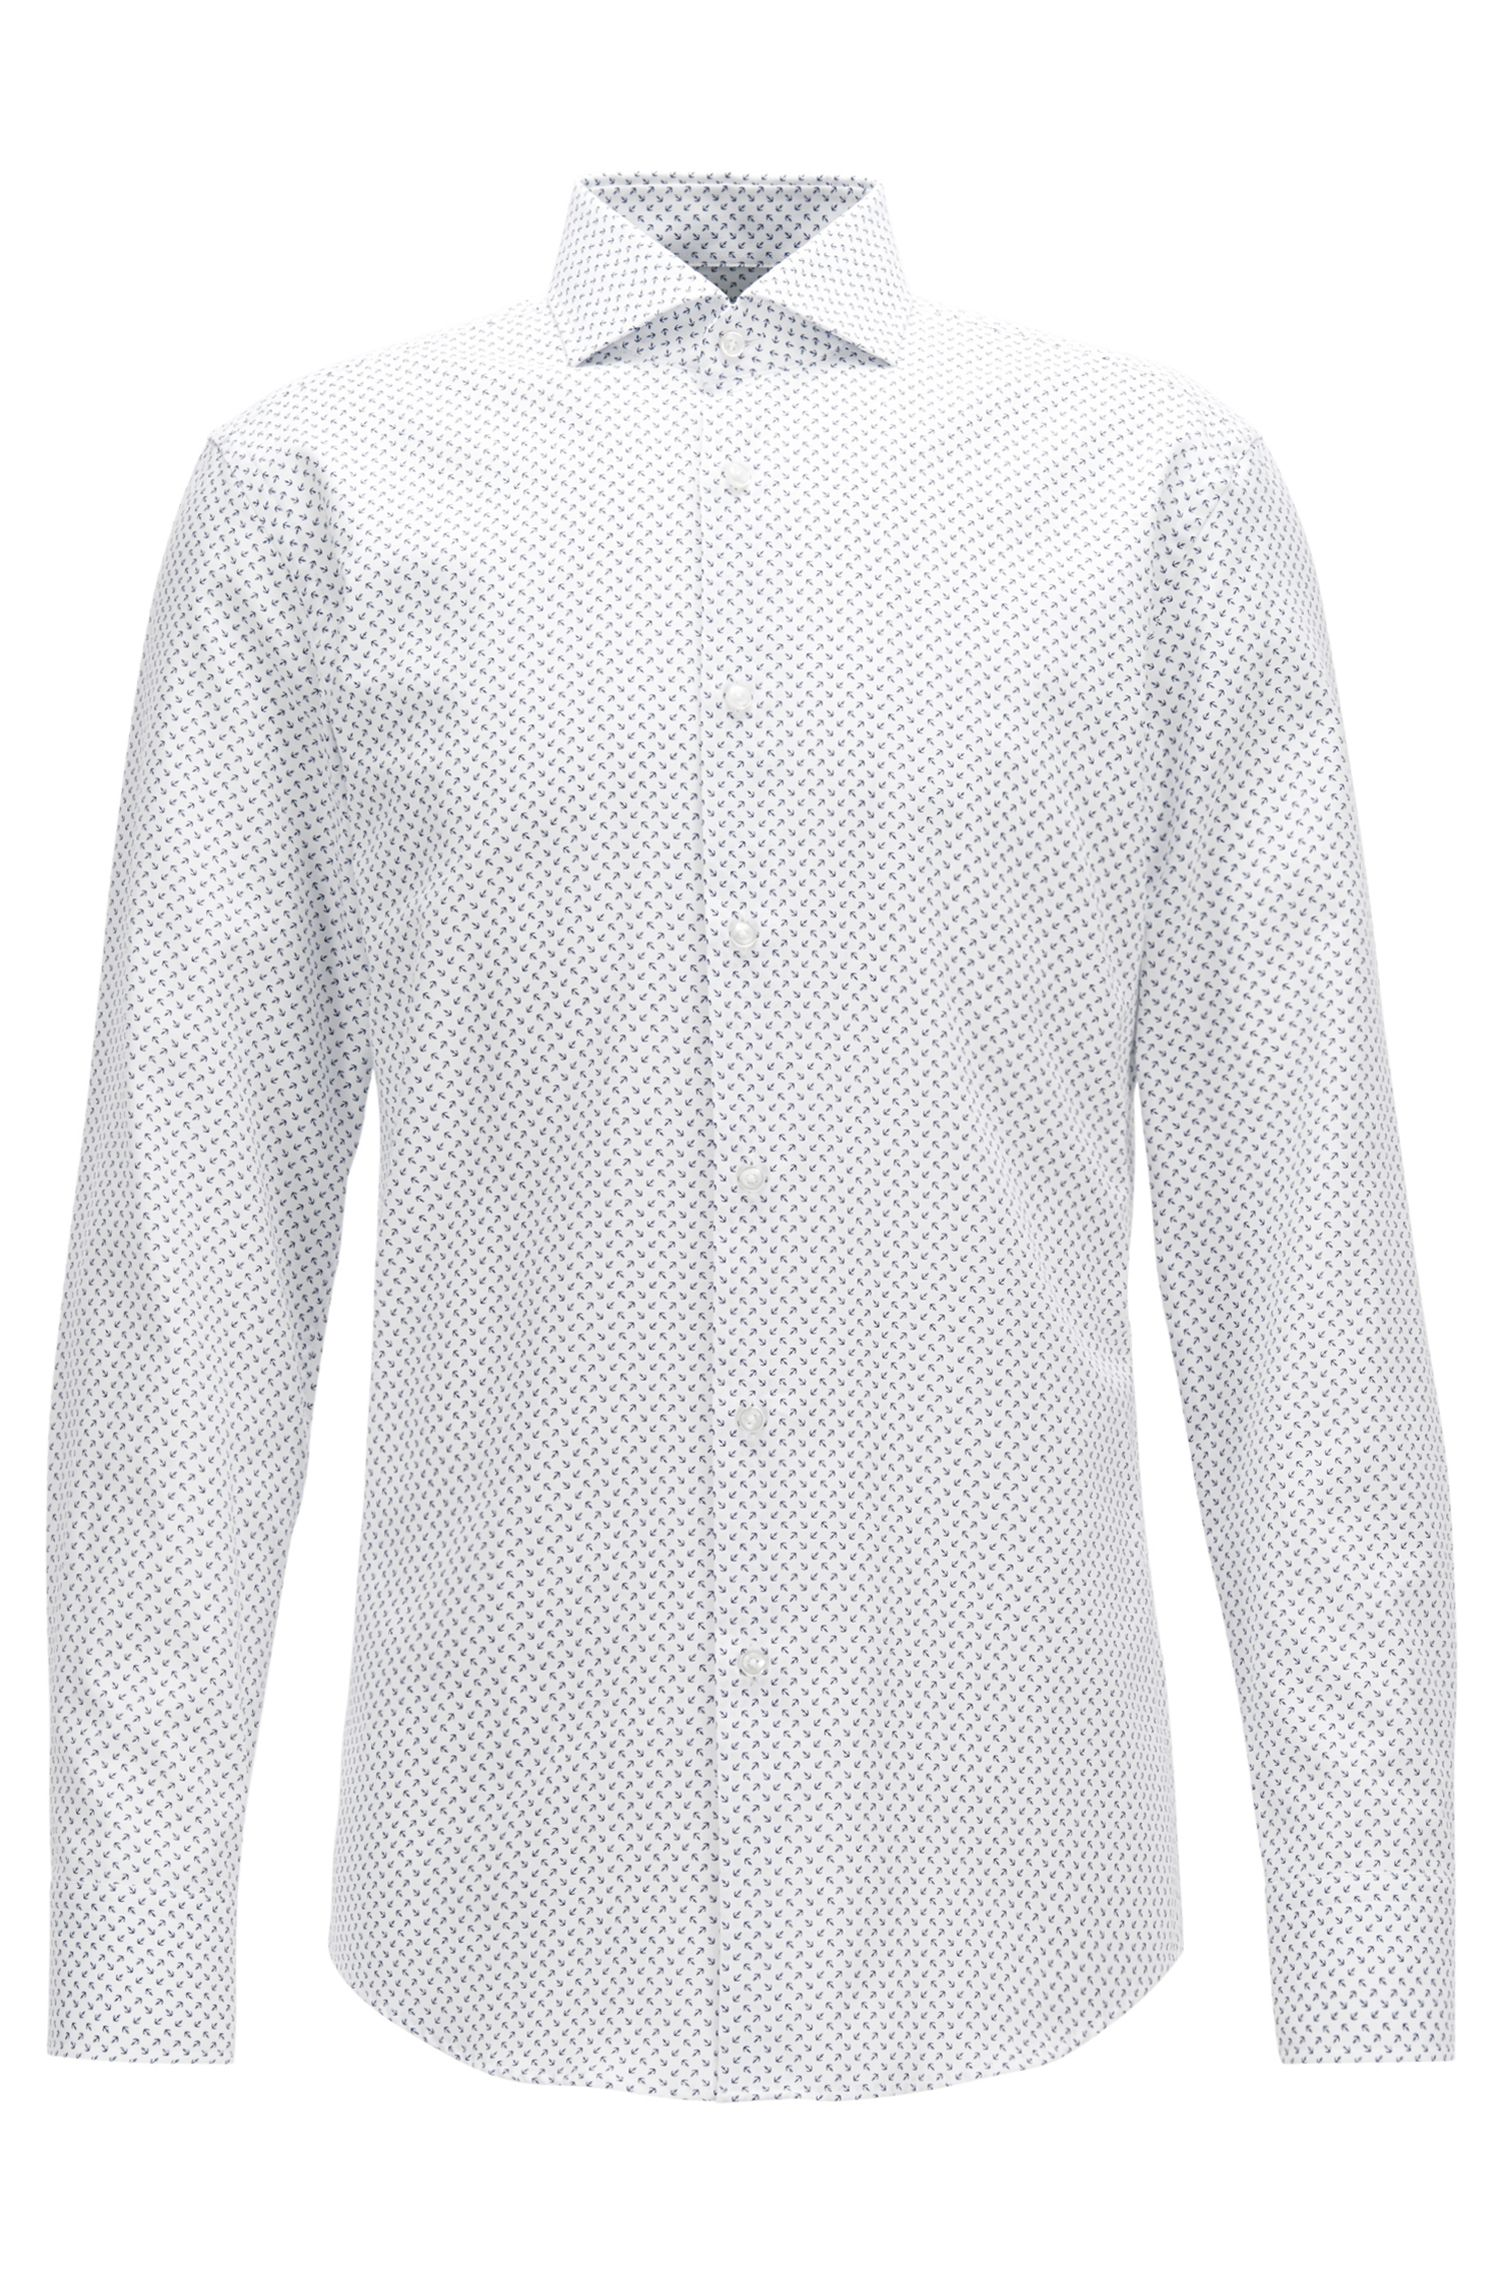 Printed Cotton Dress Shirt, Slim Fit | Jason